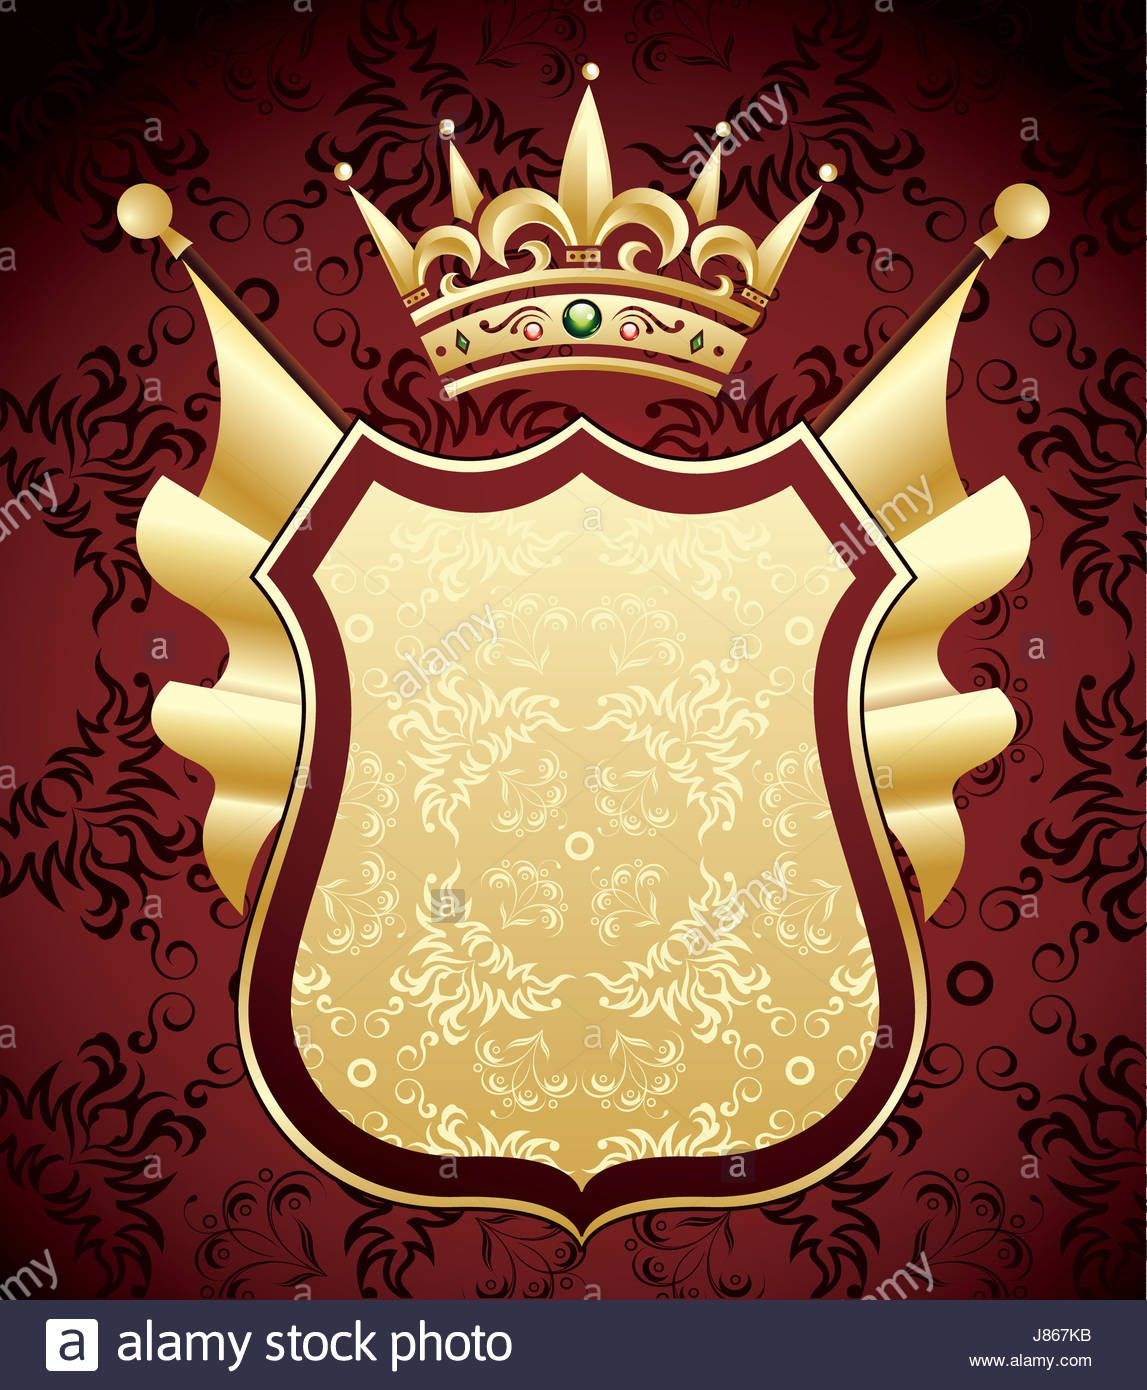 Download This Stock Image Coat Arms Gold Mantle Greeting